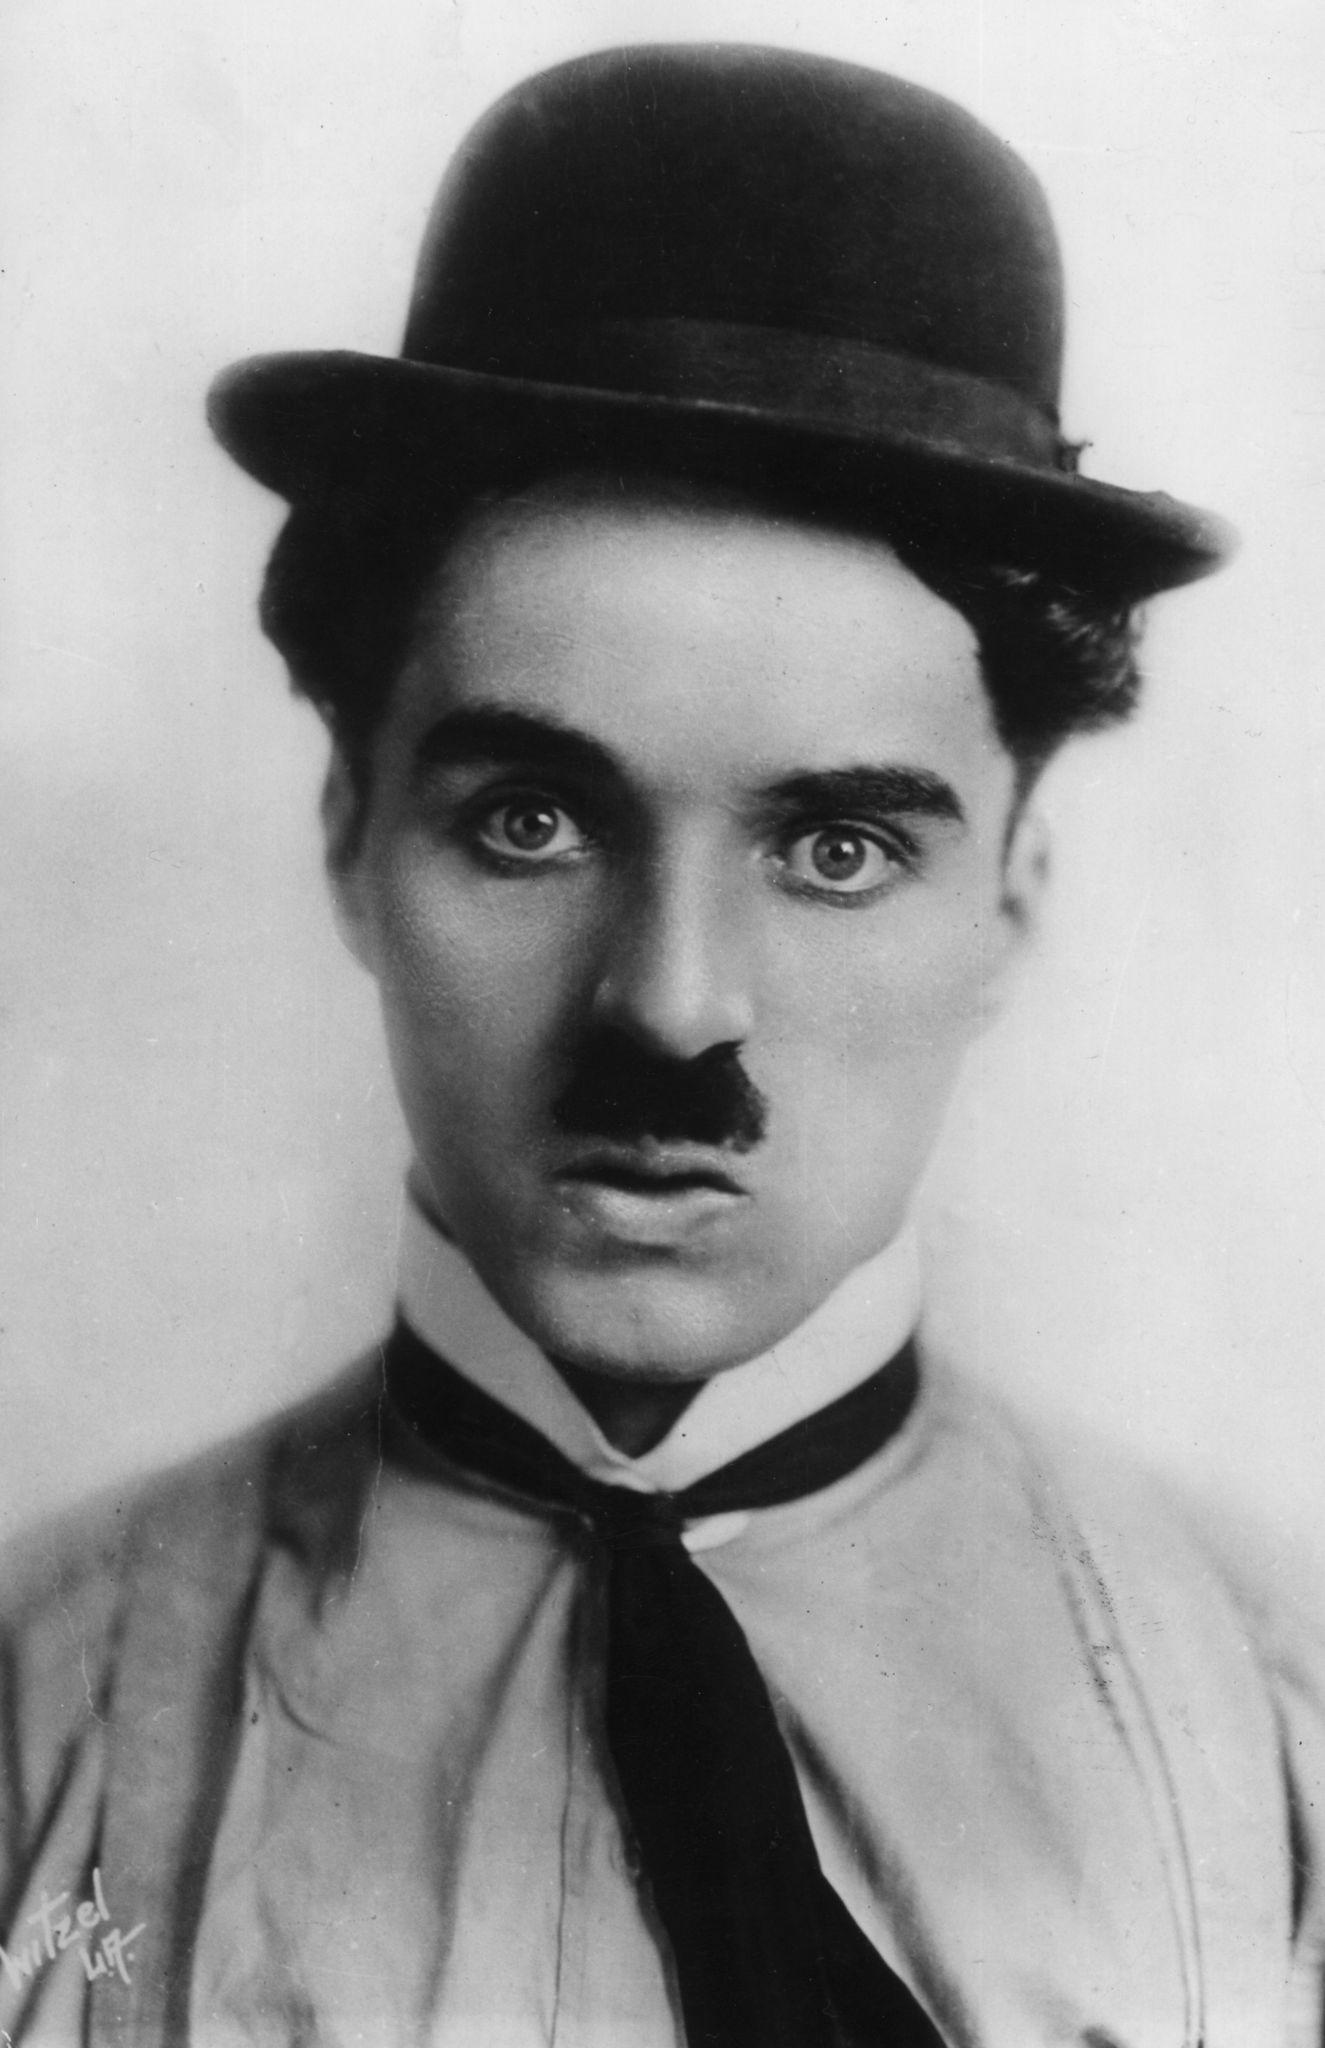 Charlie Chaplin Biography Pdf In Hindi